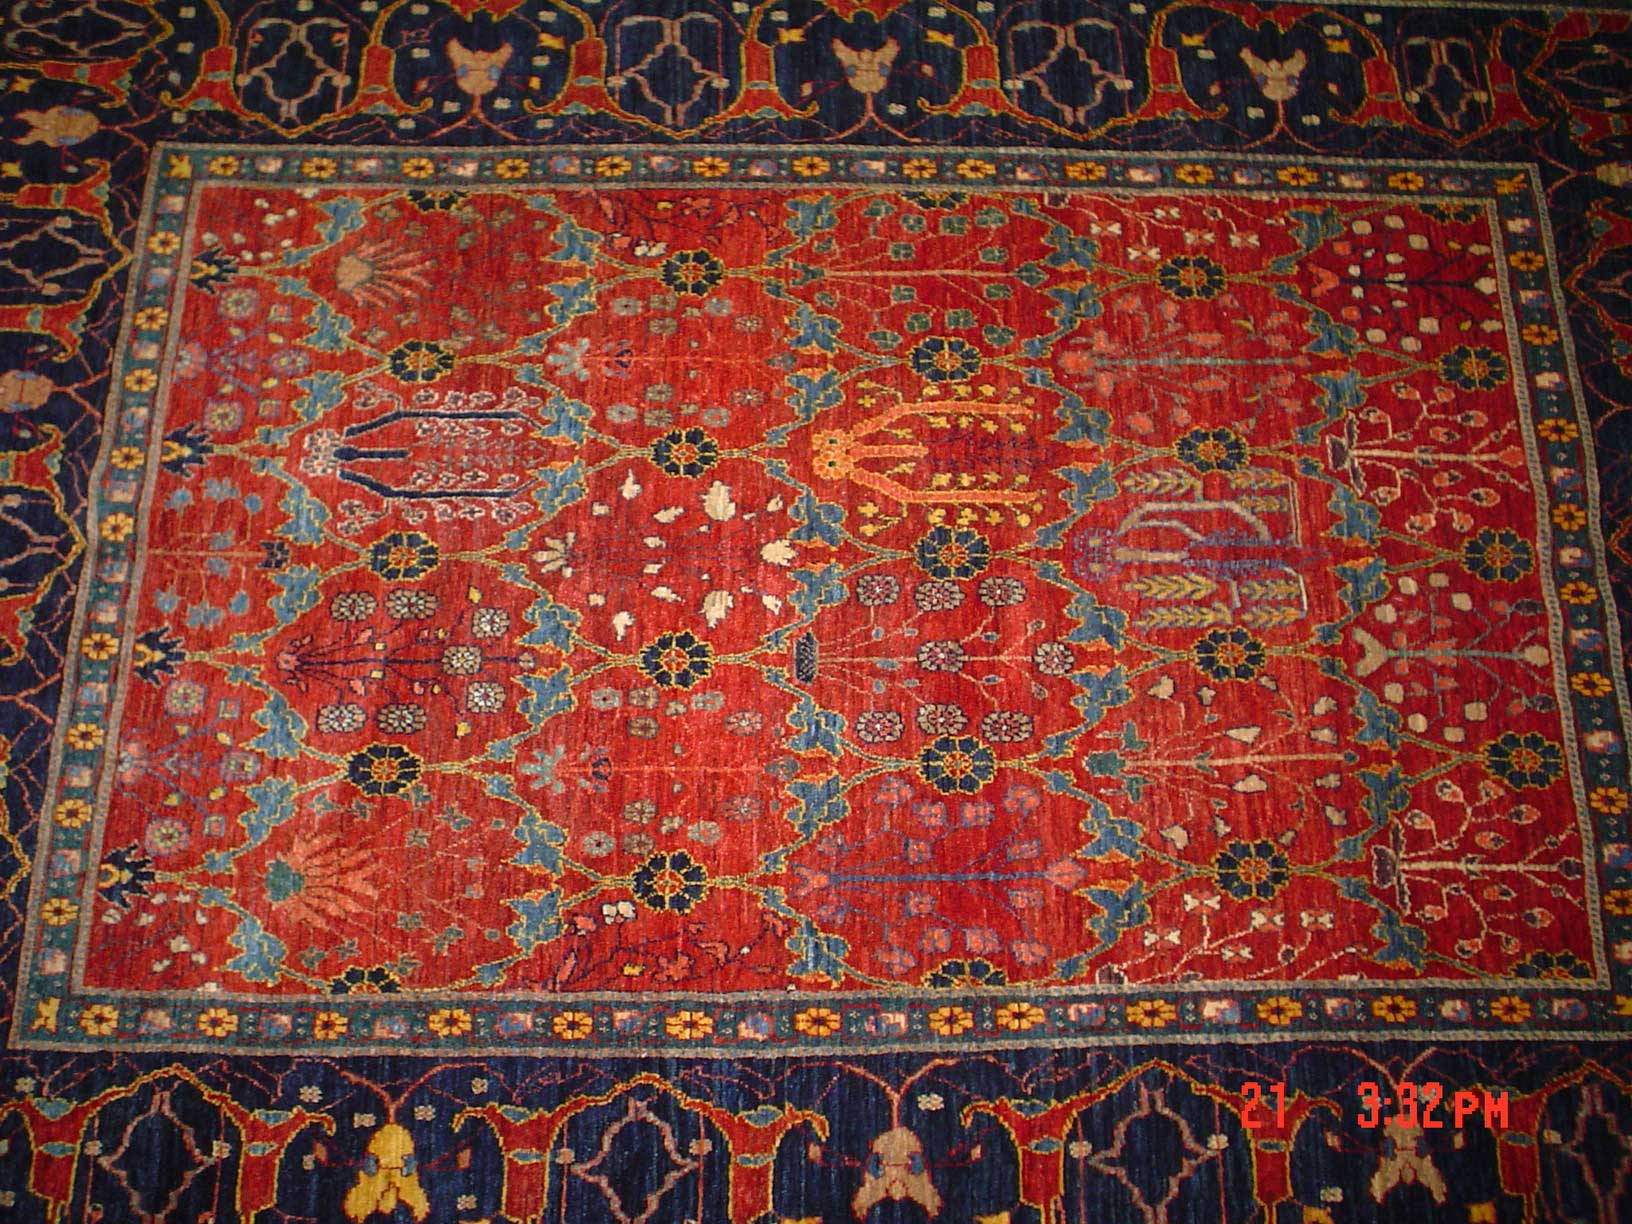 World's most beautiful Qashqai rug, ever! 6 x 8. Sold.